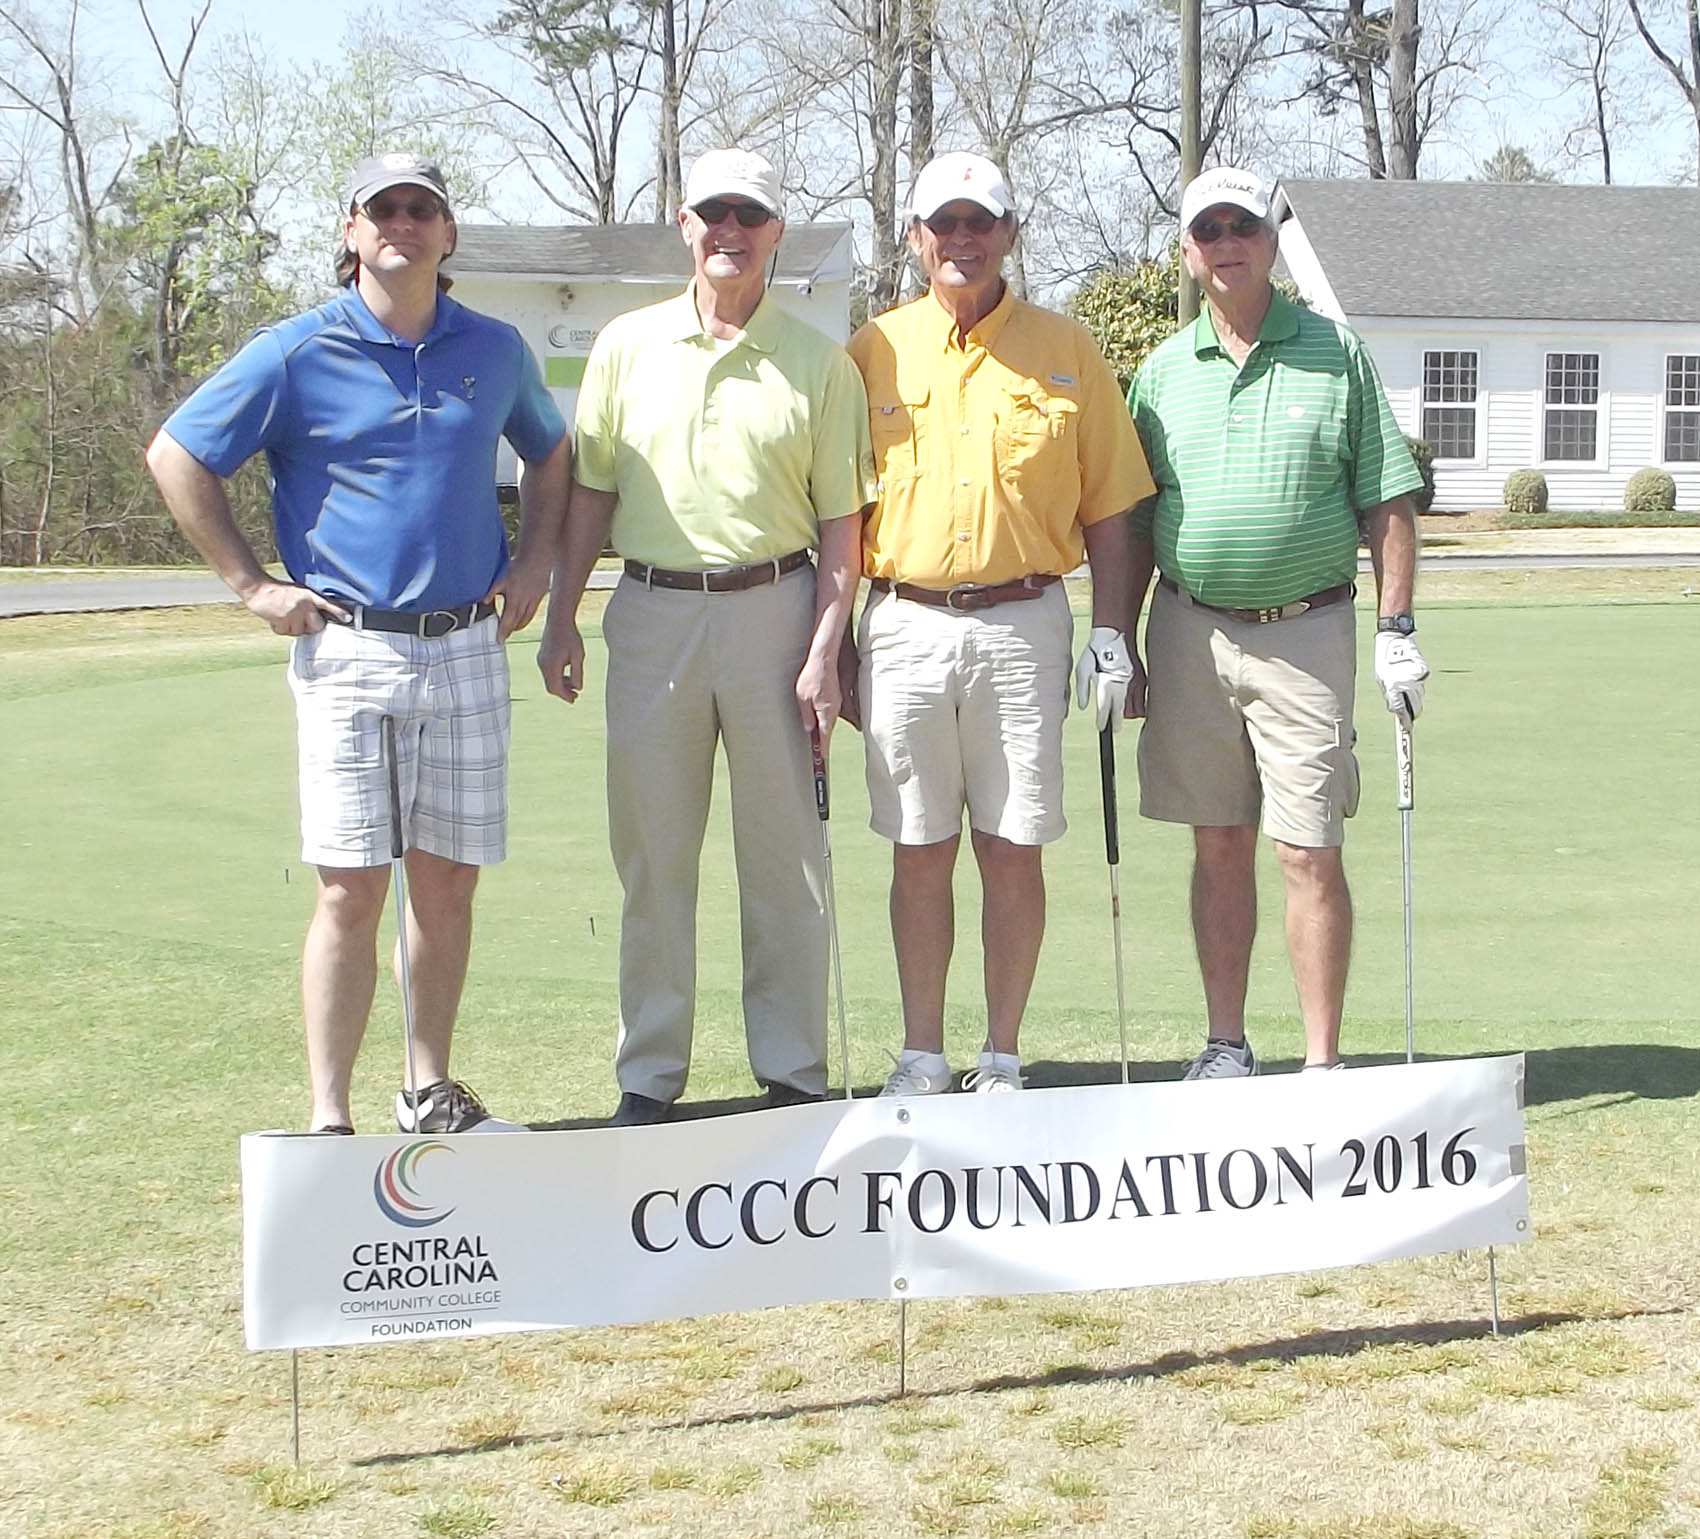 Click to enlarge,  Members of the third flight winning team in the third Central Carolina Community College Foundation Harnett Golf Classic were Bob Womble, Badget Womble, George Womble, and Jimmy Coleman. For information about the Foundation, donating to it, establishing a scholarship, or other fund-raising events, contact Emily Hare, executive director of the CCCC Foundation, 919-718-7230, or ehare@cccc.edu. Information is also available at the CCCC Foundation website, www.cccc.edu/foundation.